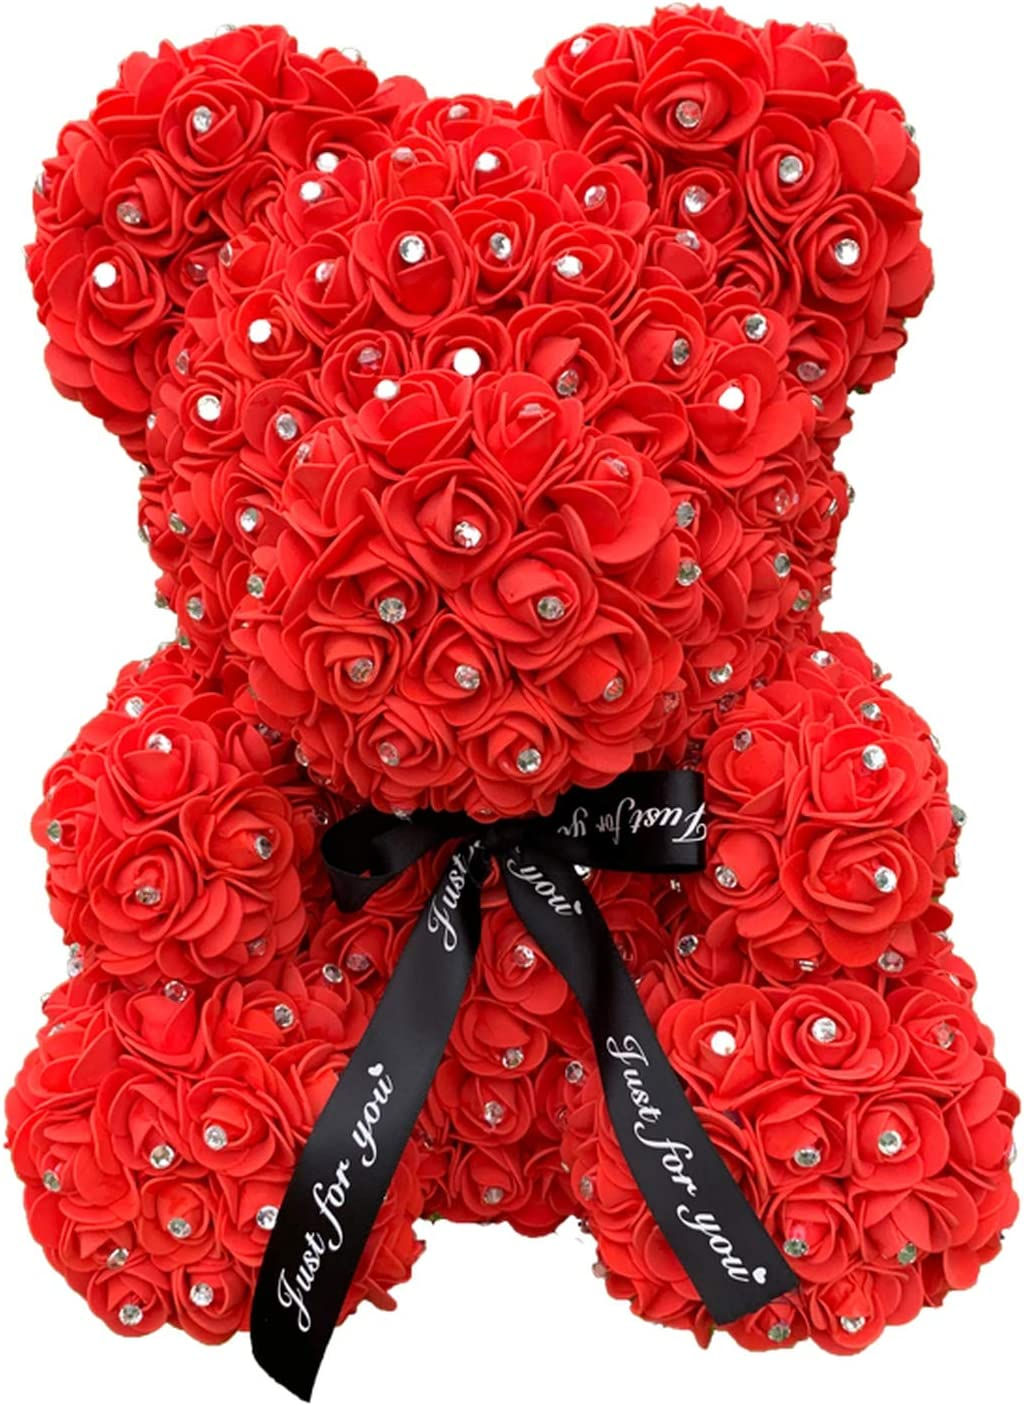 Rose Teddy Bears Accented with Rhinestones